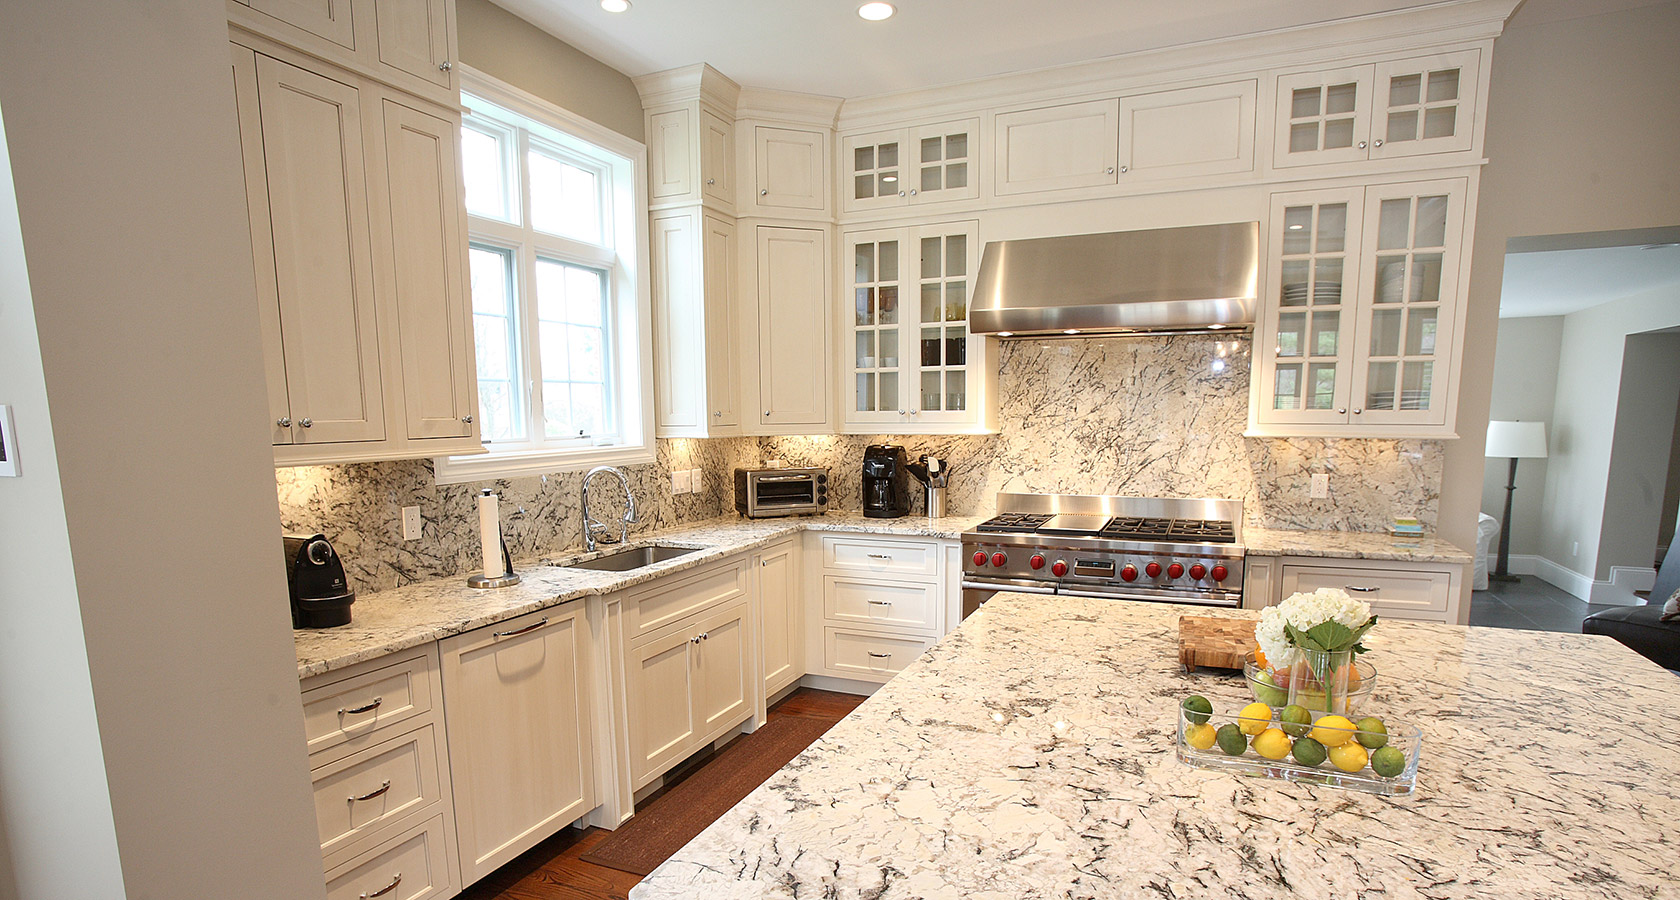 Persian pearl granite countertop kitchen design ideas for Granite countertop design ideas